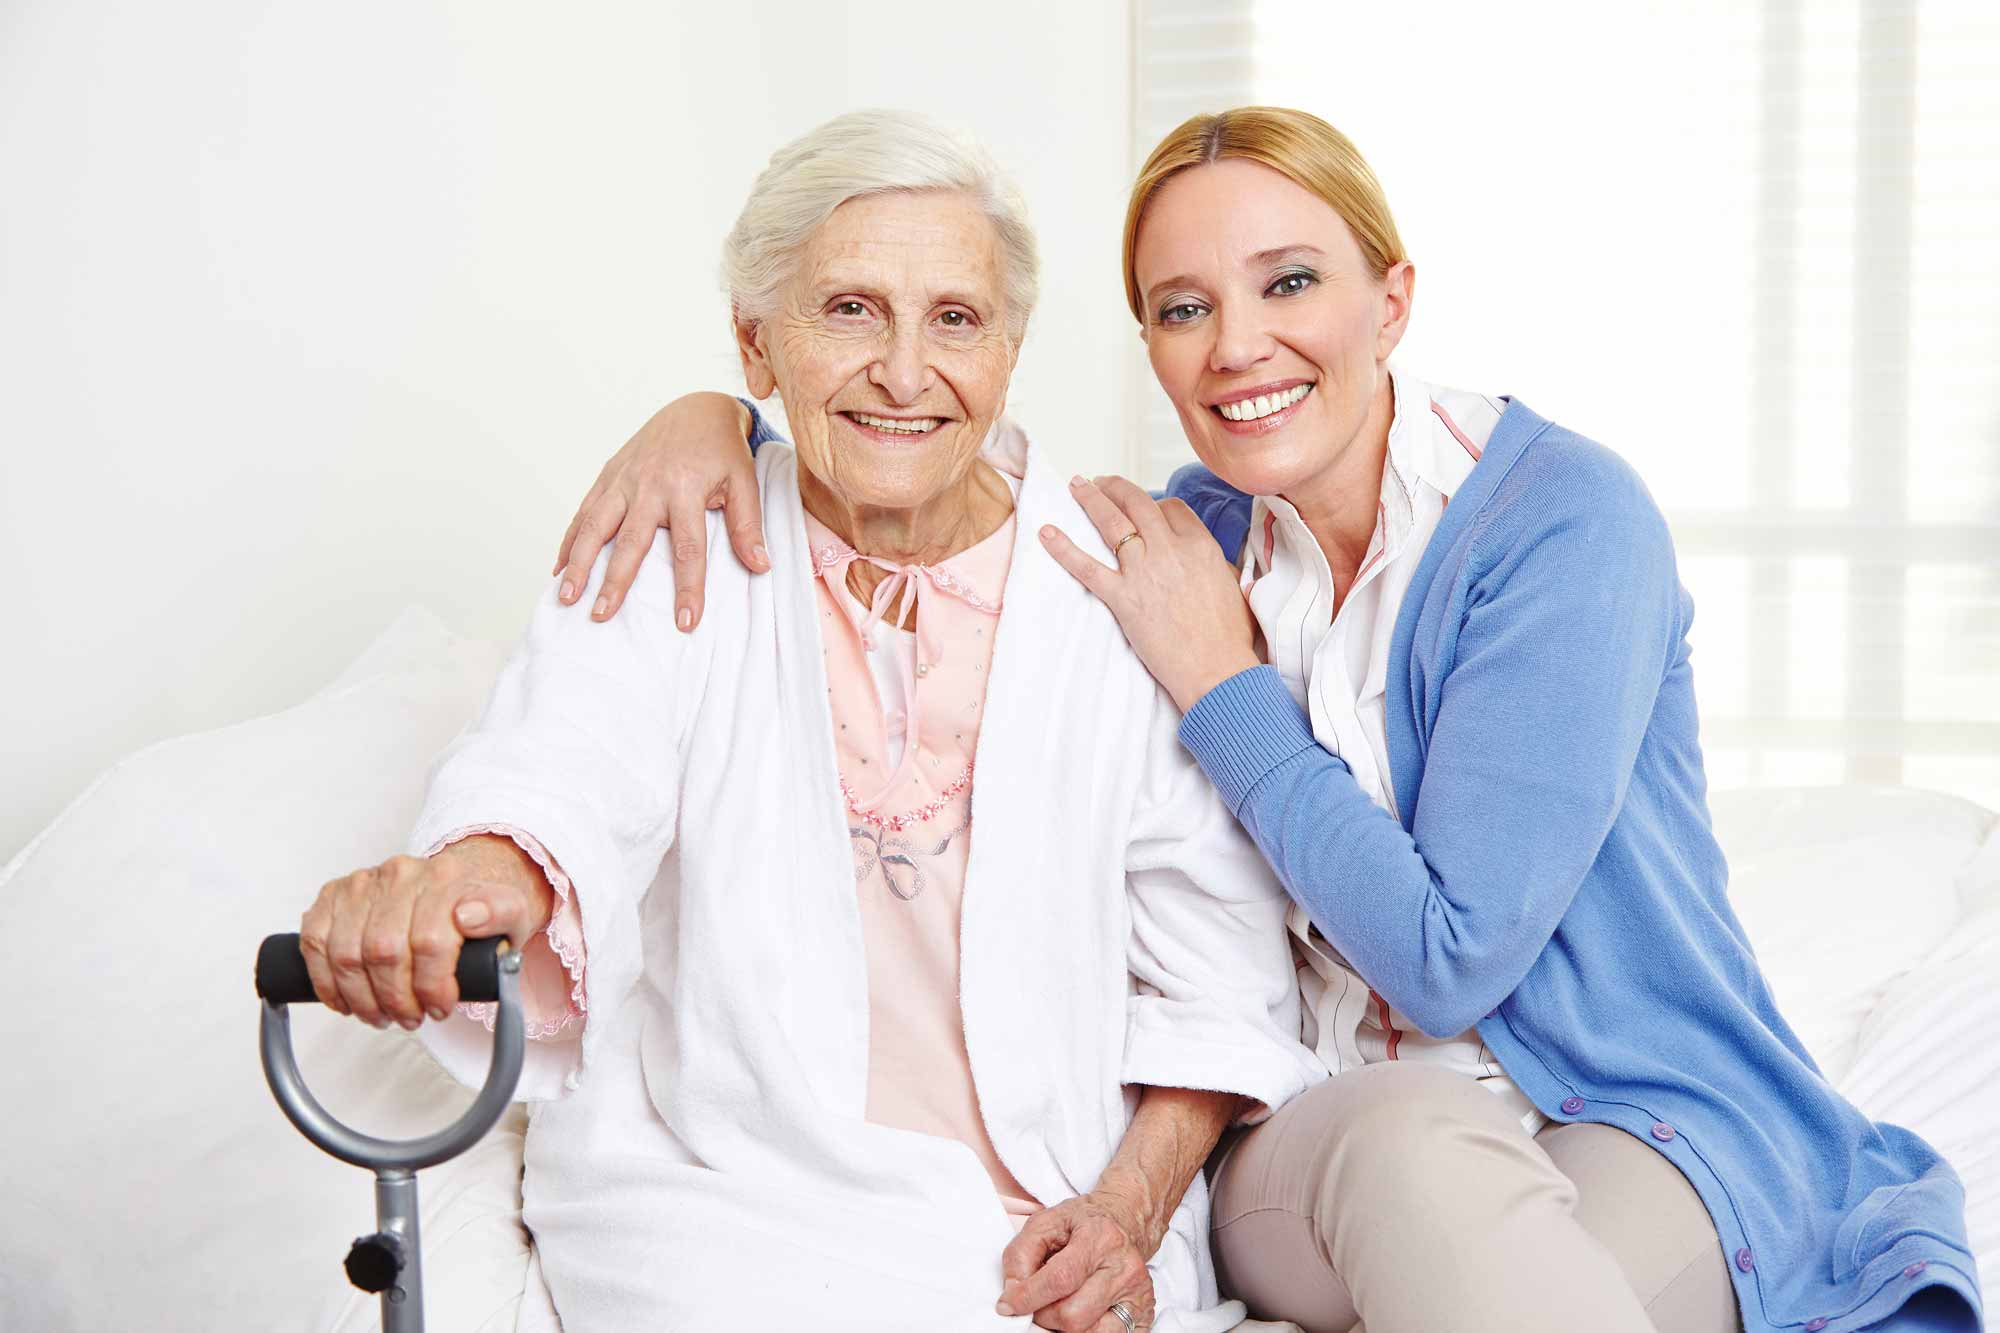 old and young woman at care facility